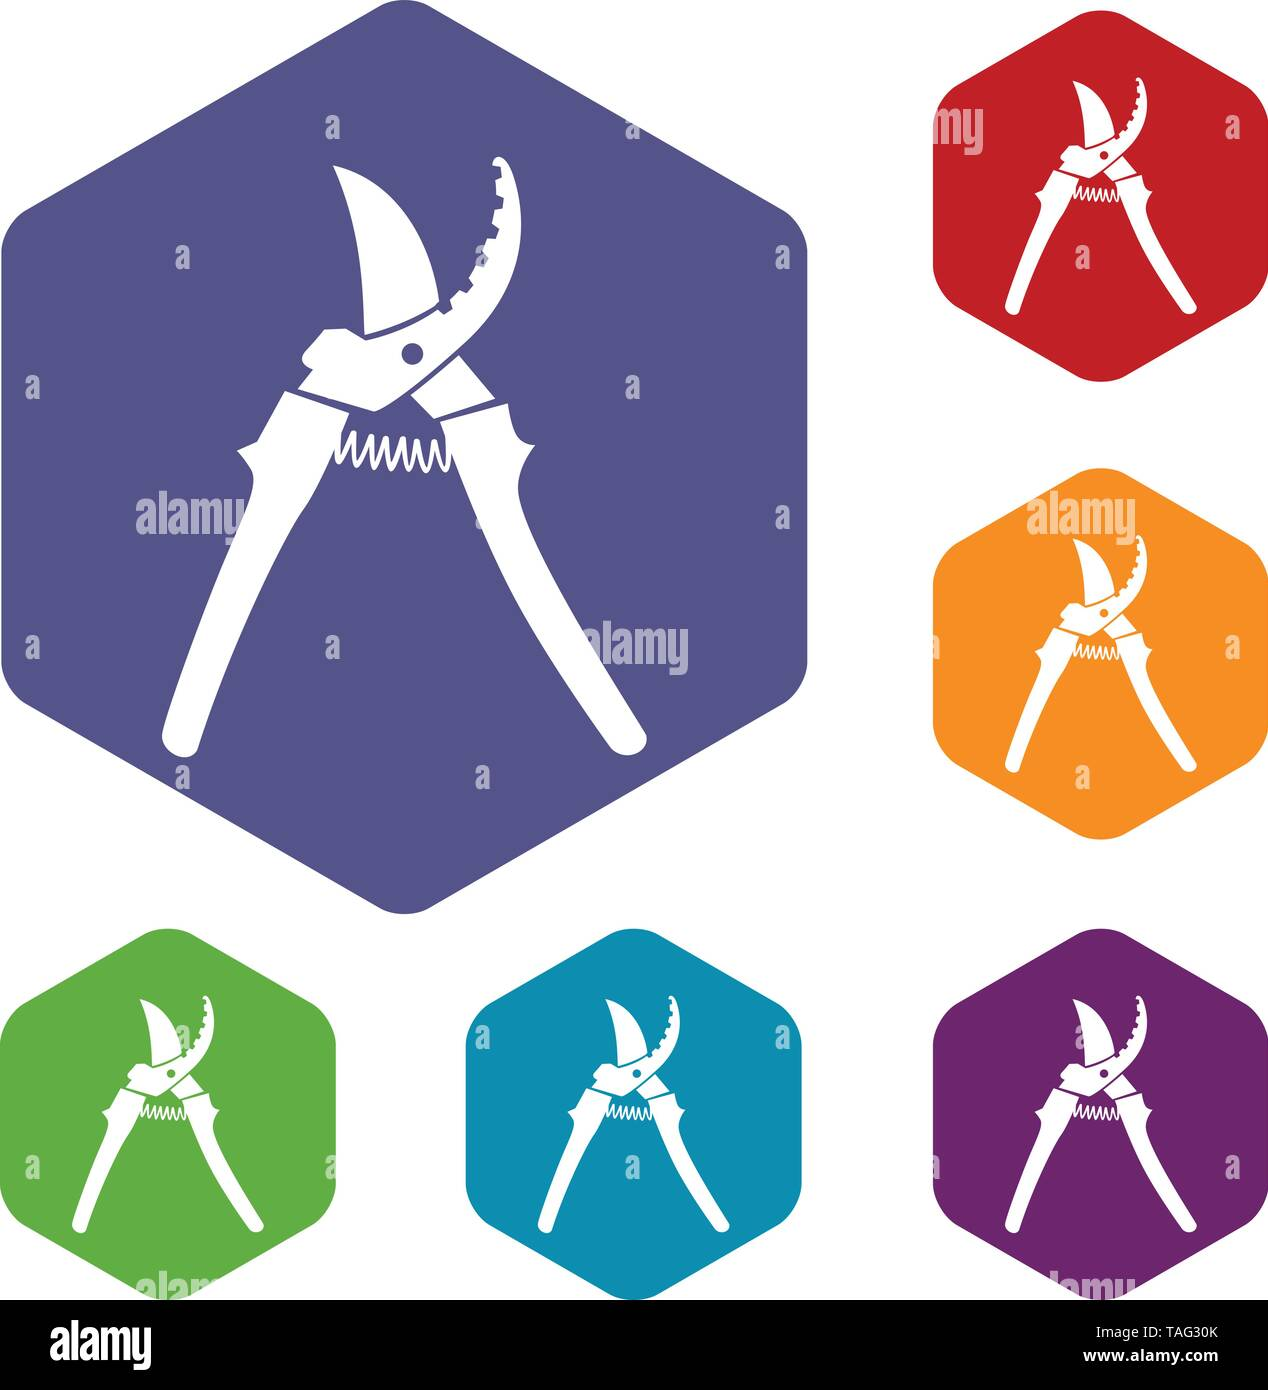 pruner icons vector hexahedron - Stock Image